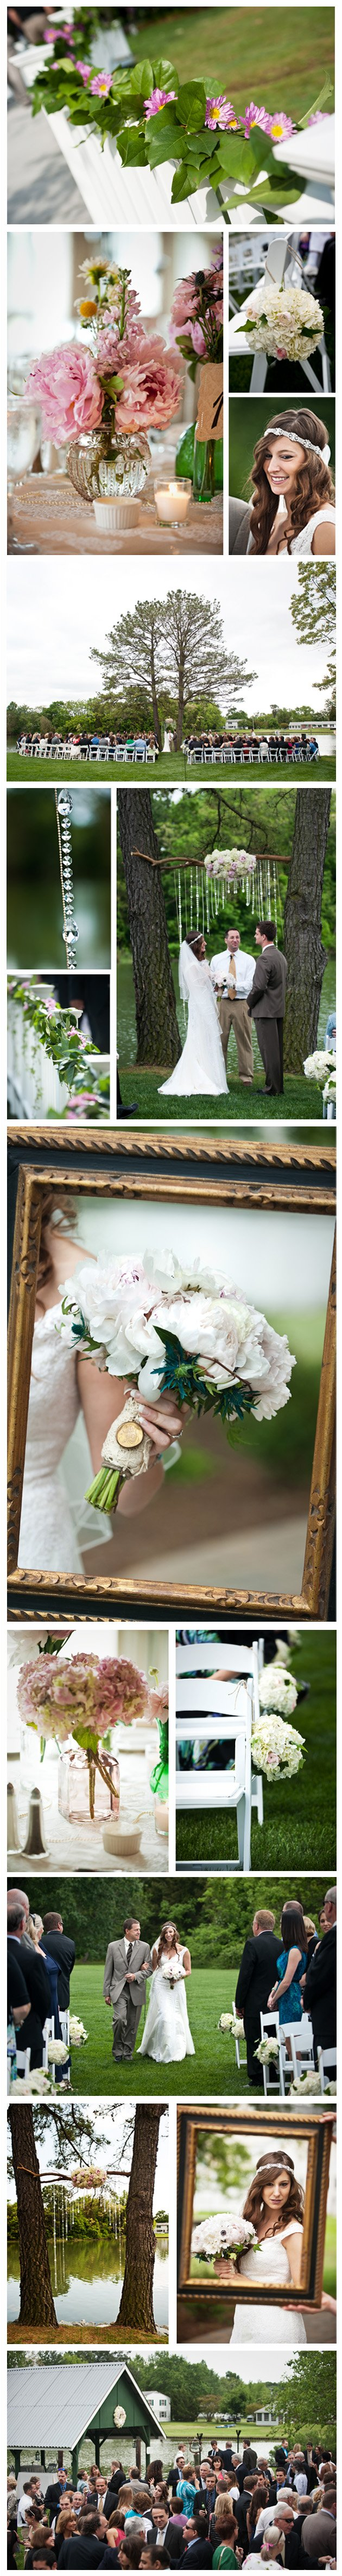 Spotlight on Seasonal Flowers Wedding Florist on Maryland's Eastern Shore